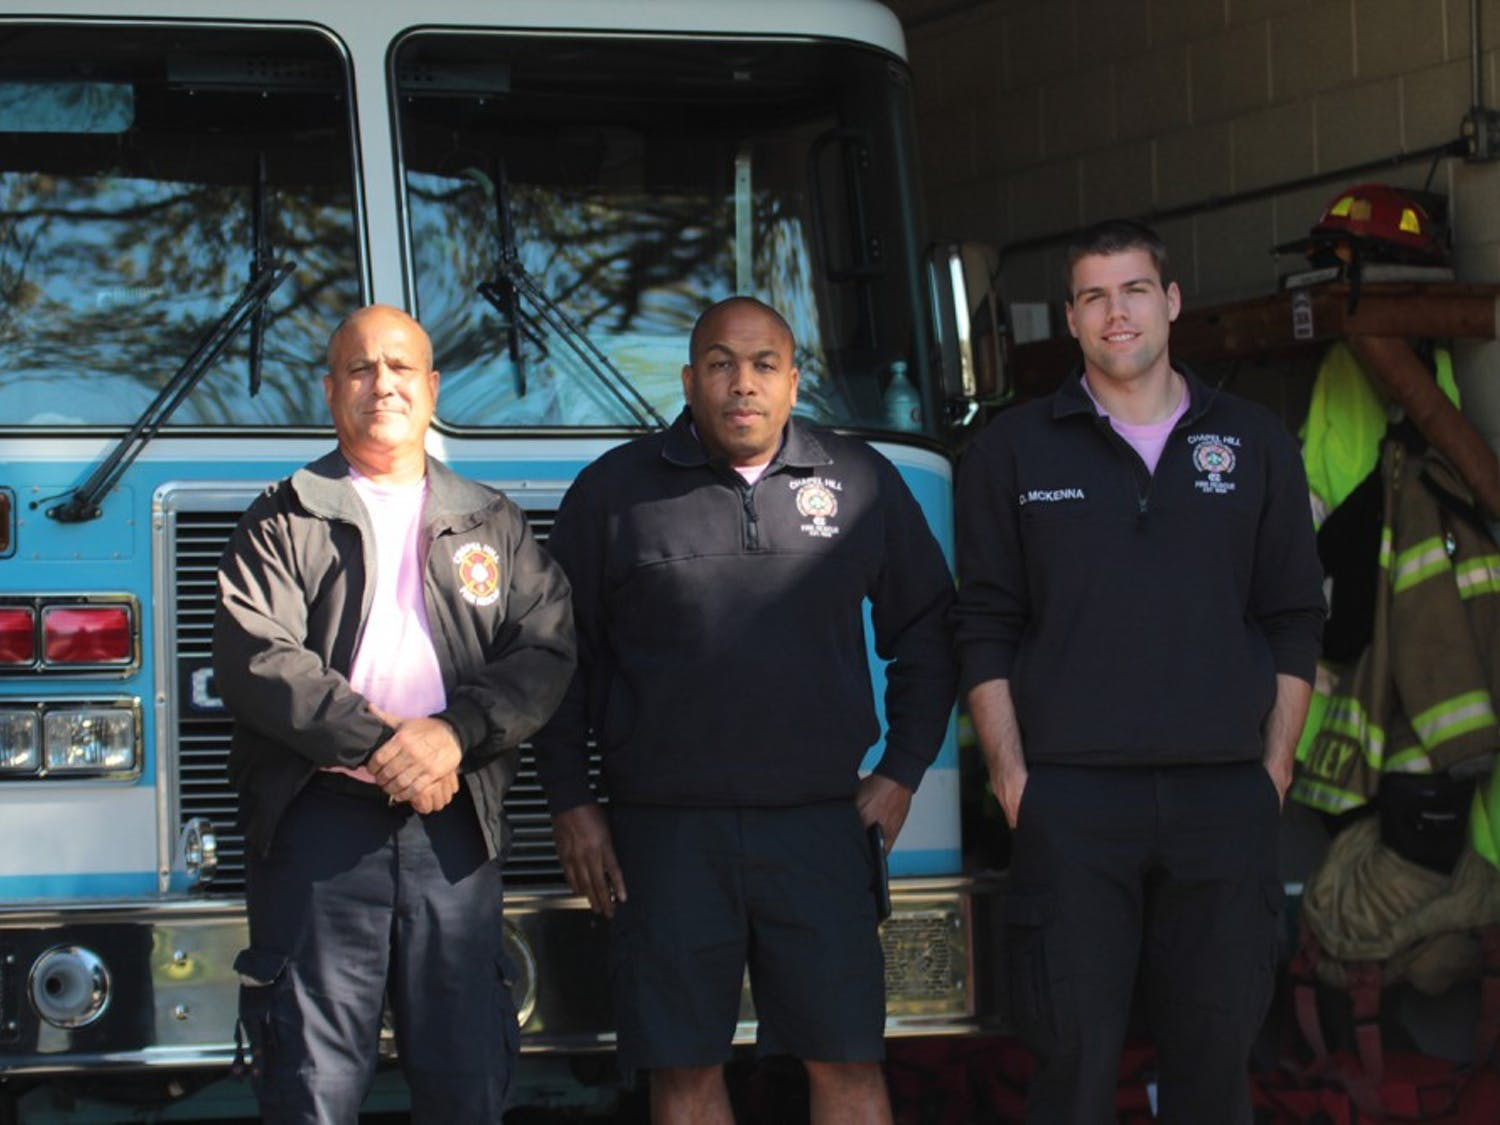 Chapel Hill Firefighters Richard Bucci (left), Devin McKenna (right) and Fire Equipment Operator Keith Alston (middle) pose at Chapel Hill Fire Station 2.